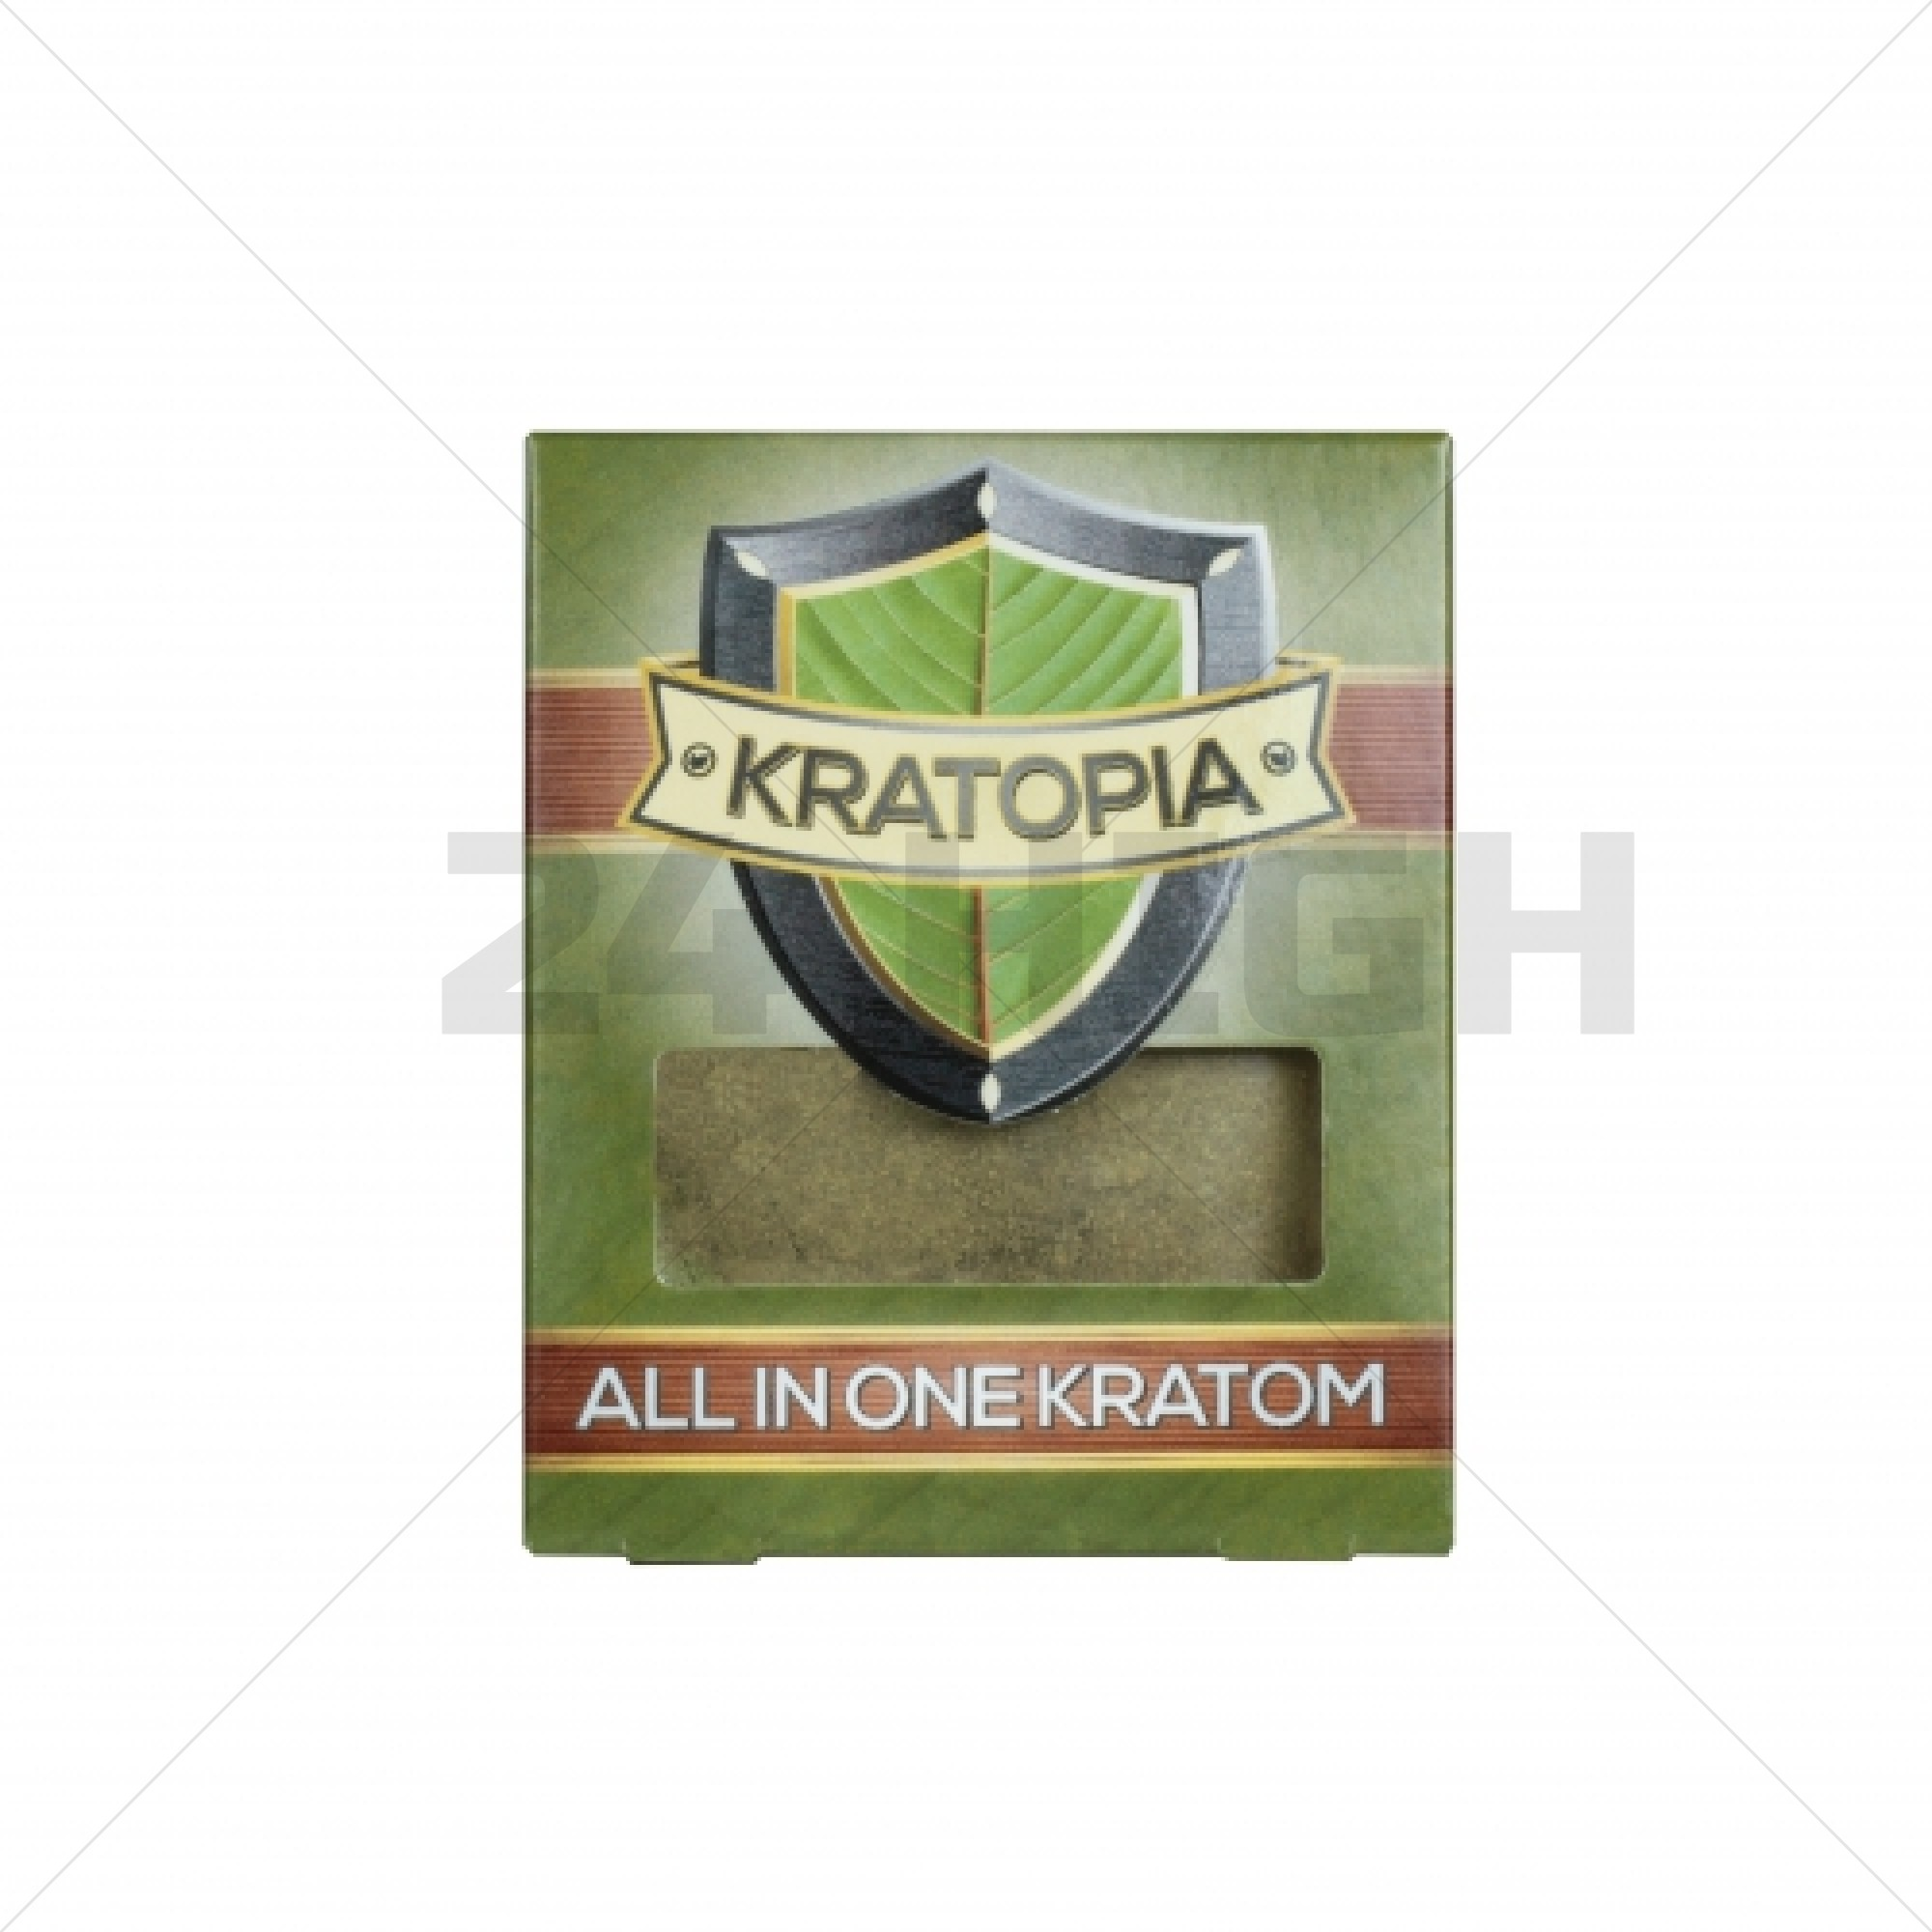 All in one Kratom